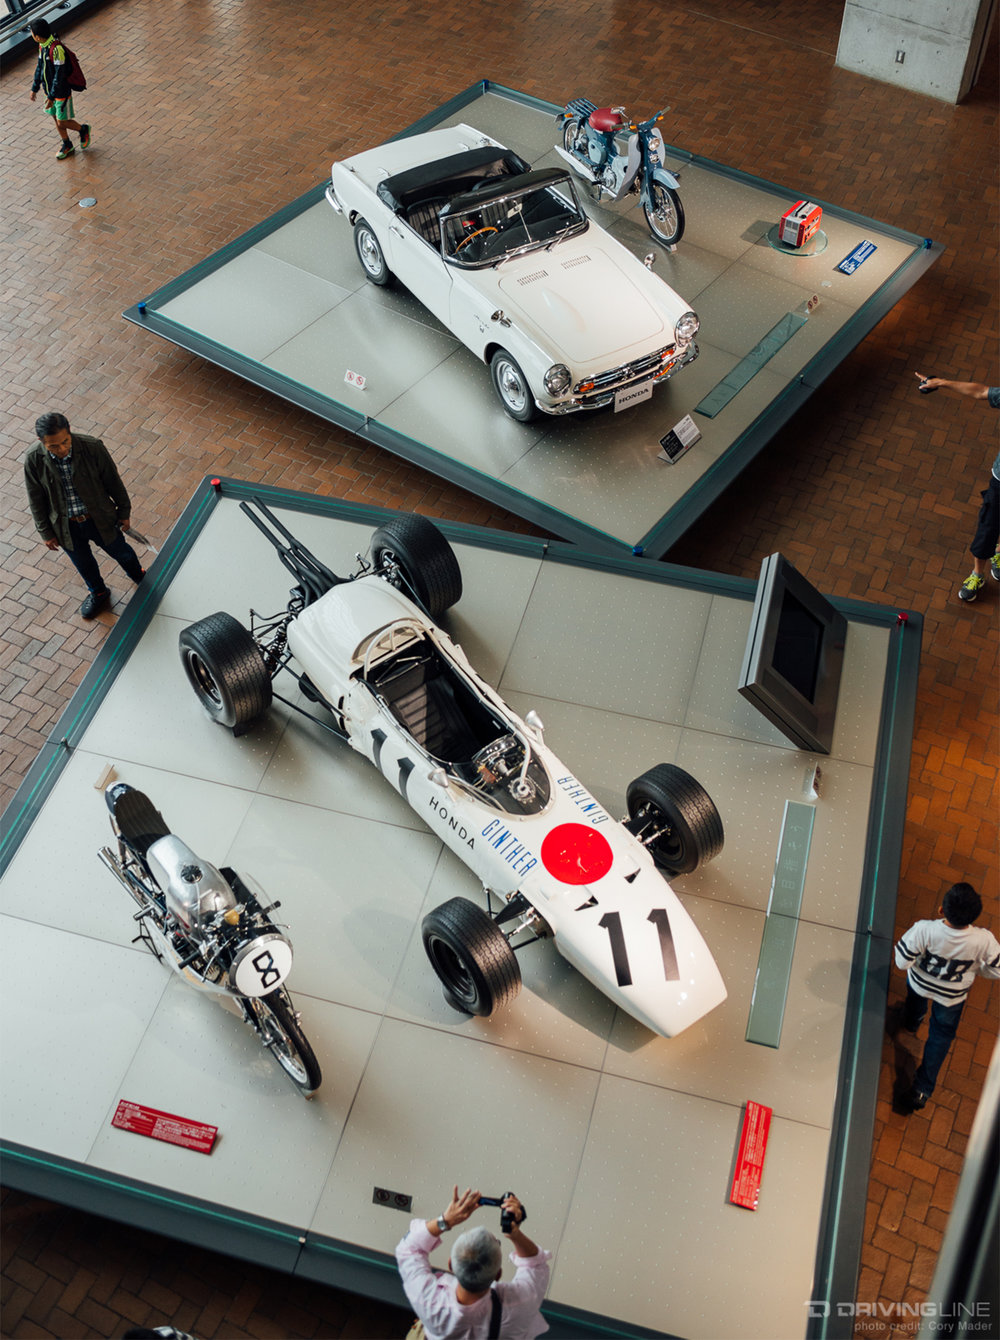 Honda-Collection-Hall-2016-18B.jpg